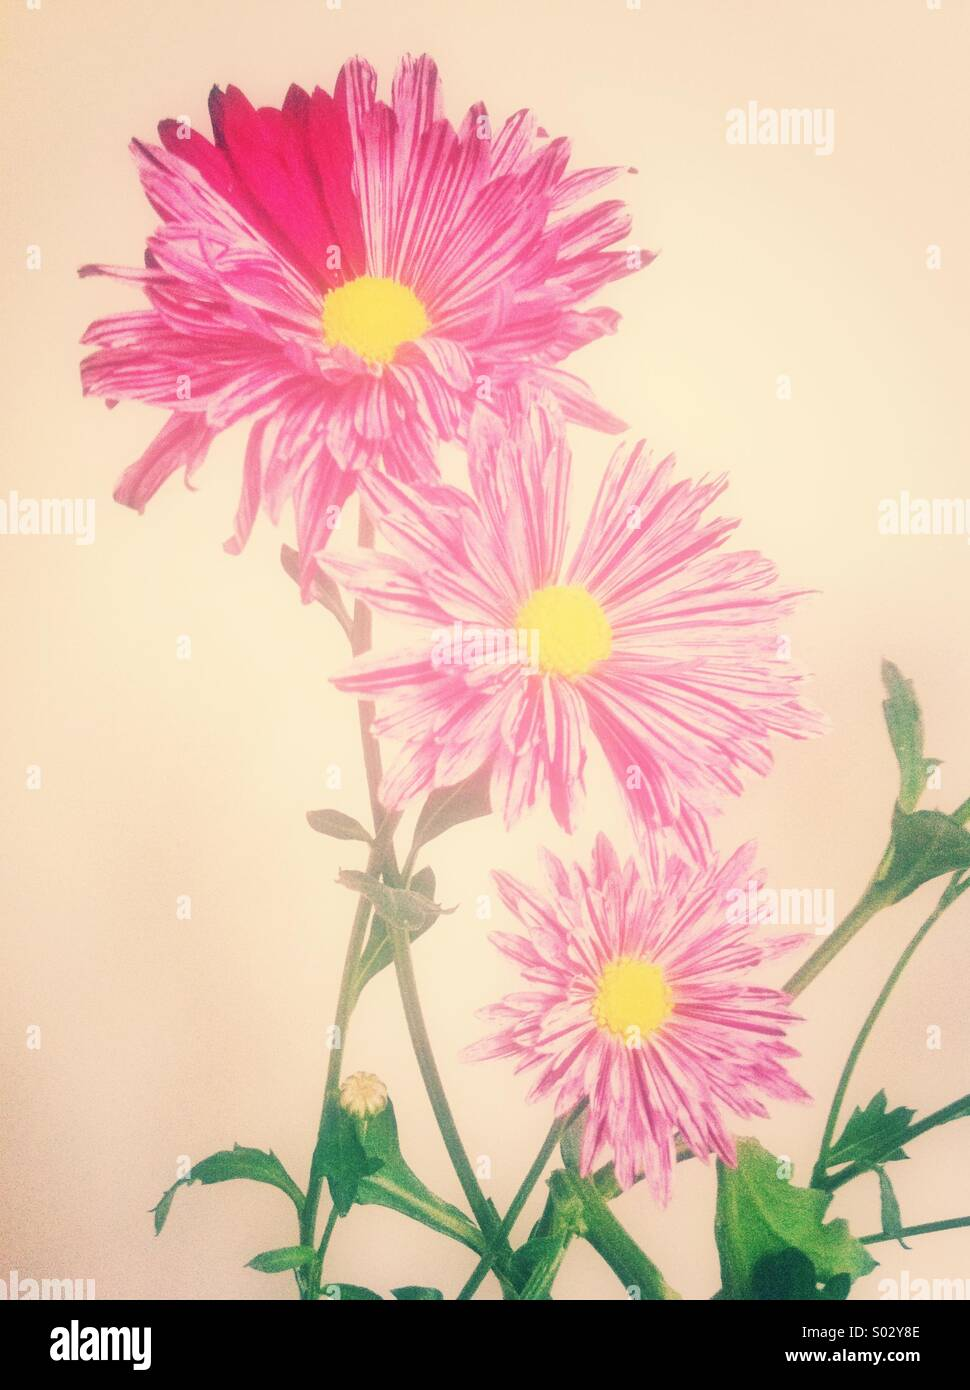 Pink chrysanthemum flowers - Stock Image